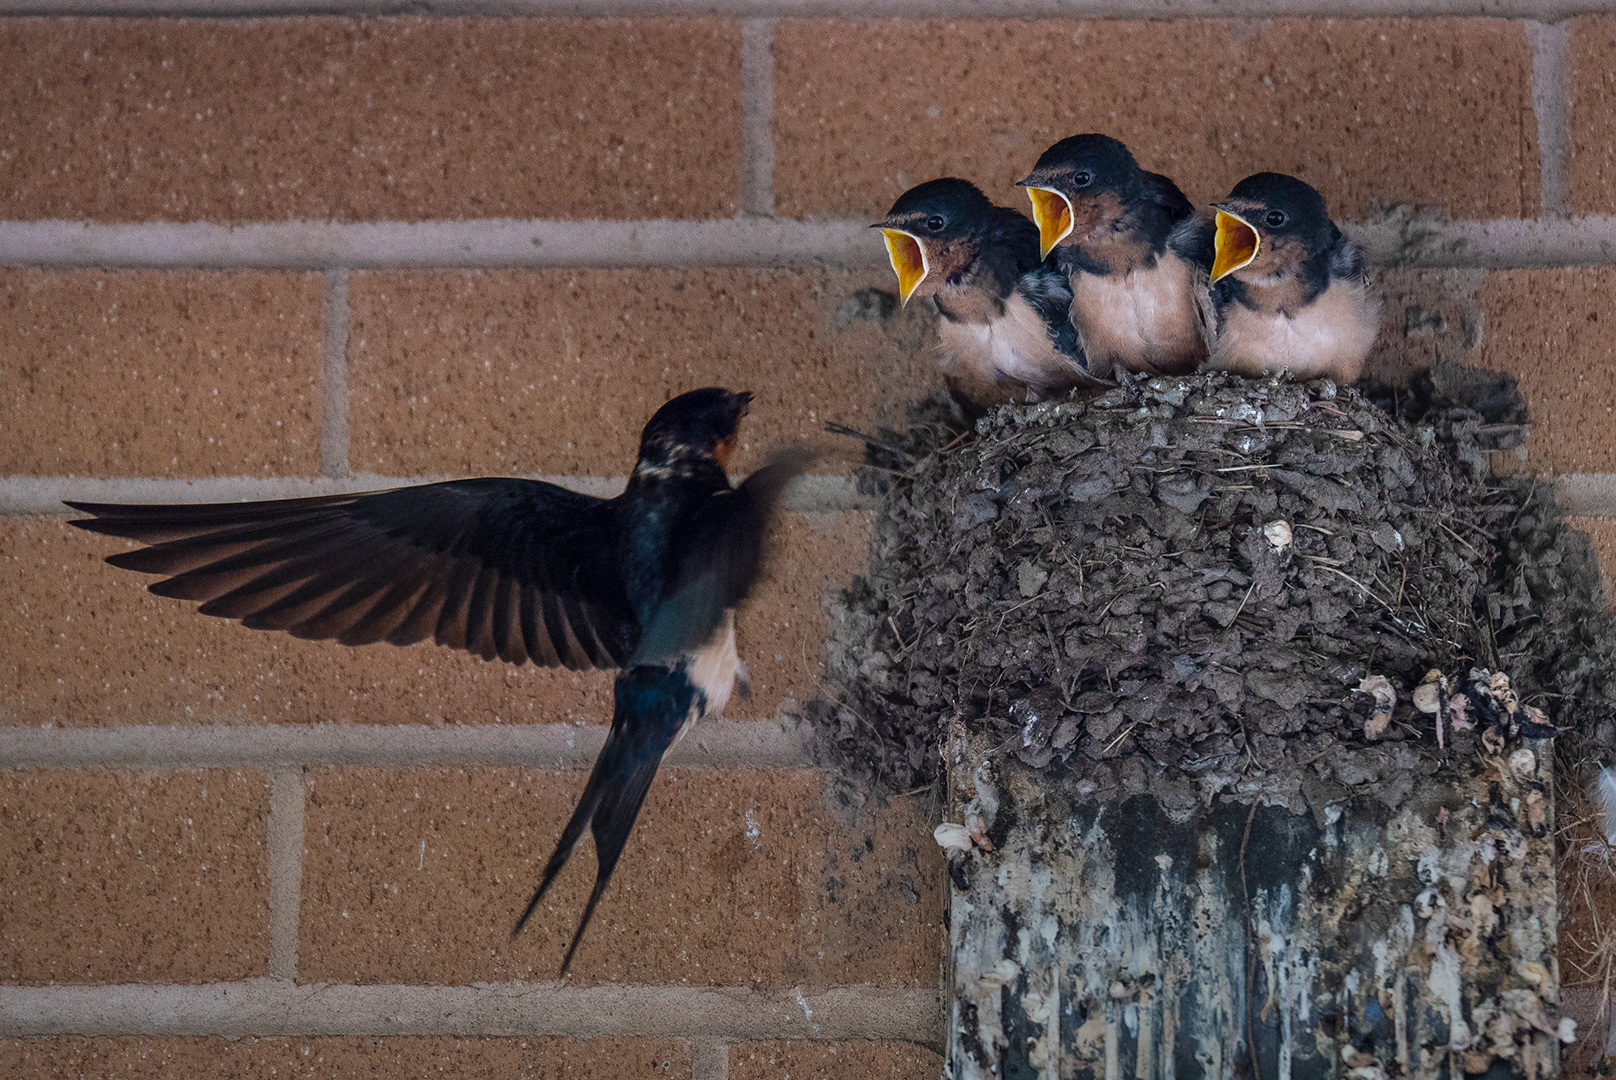 Hungry Baby Swallows